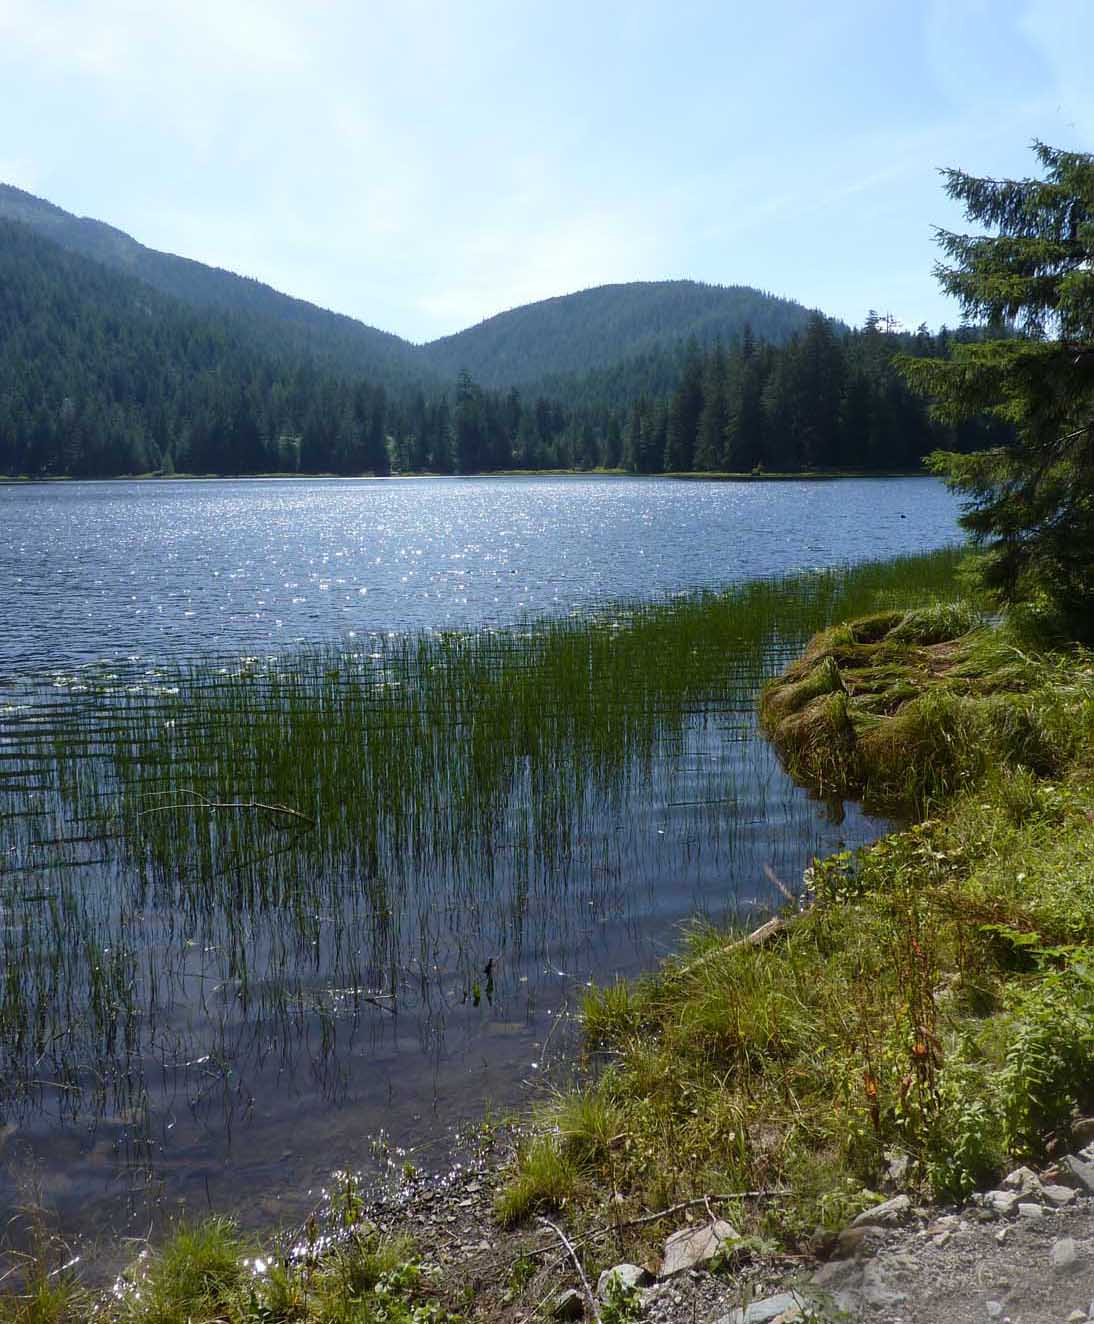 A lake and mountains with grasses on the shore.